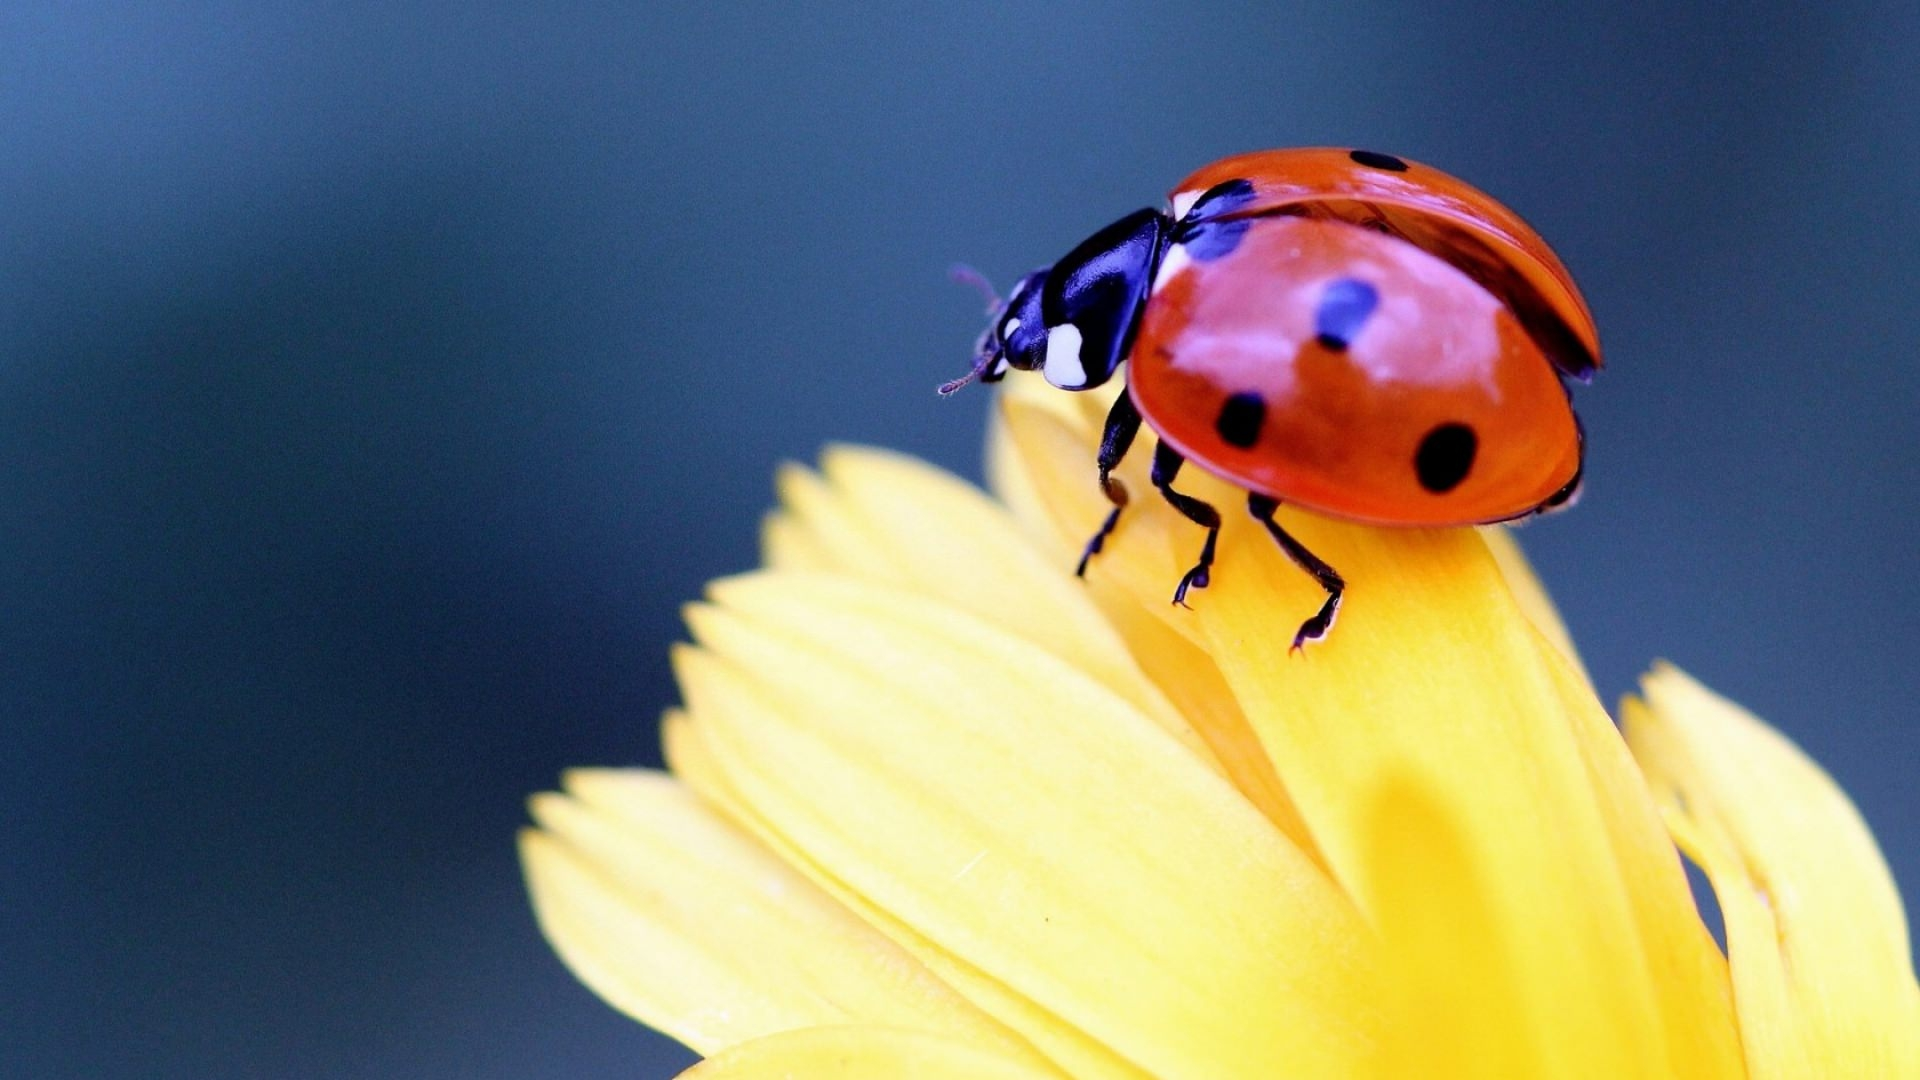 Ladybug on Flower Wallpaper